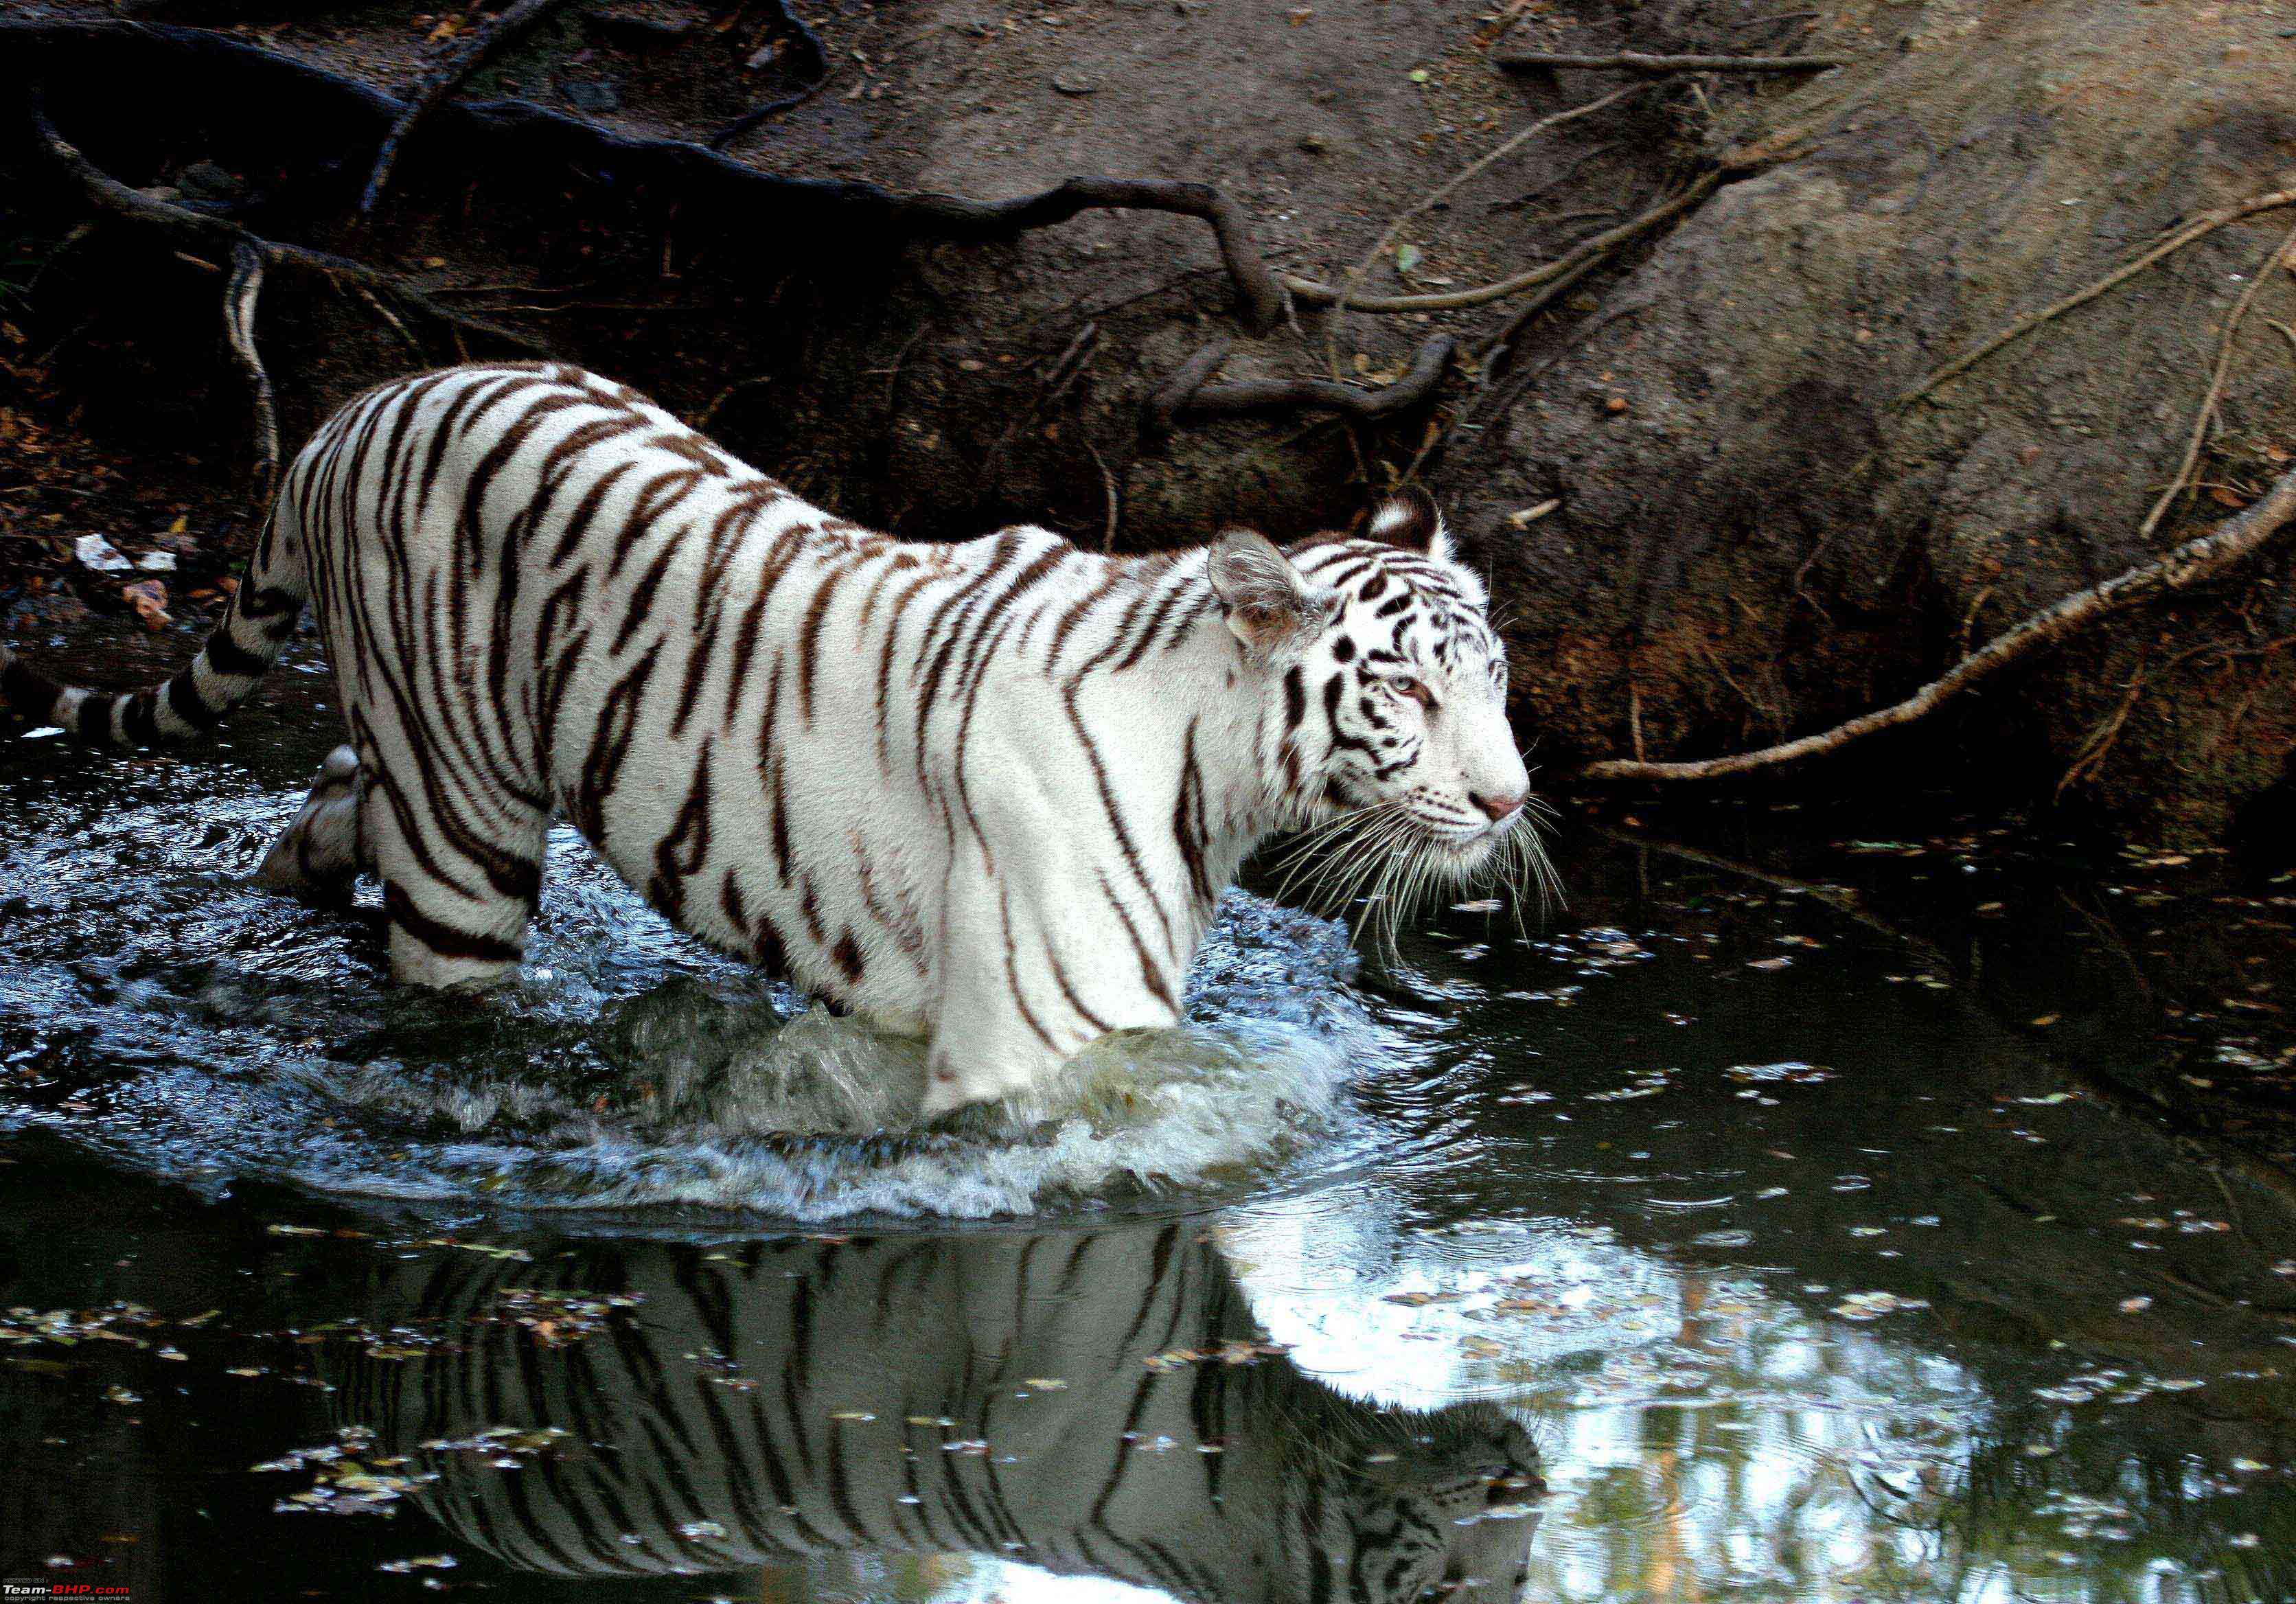 White tigers in water - photo#15